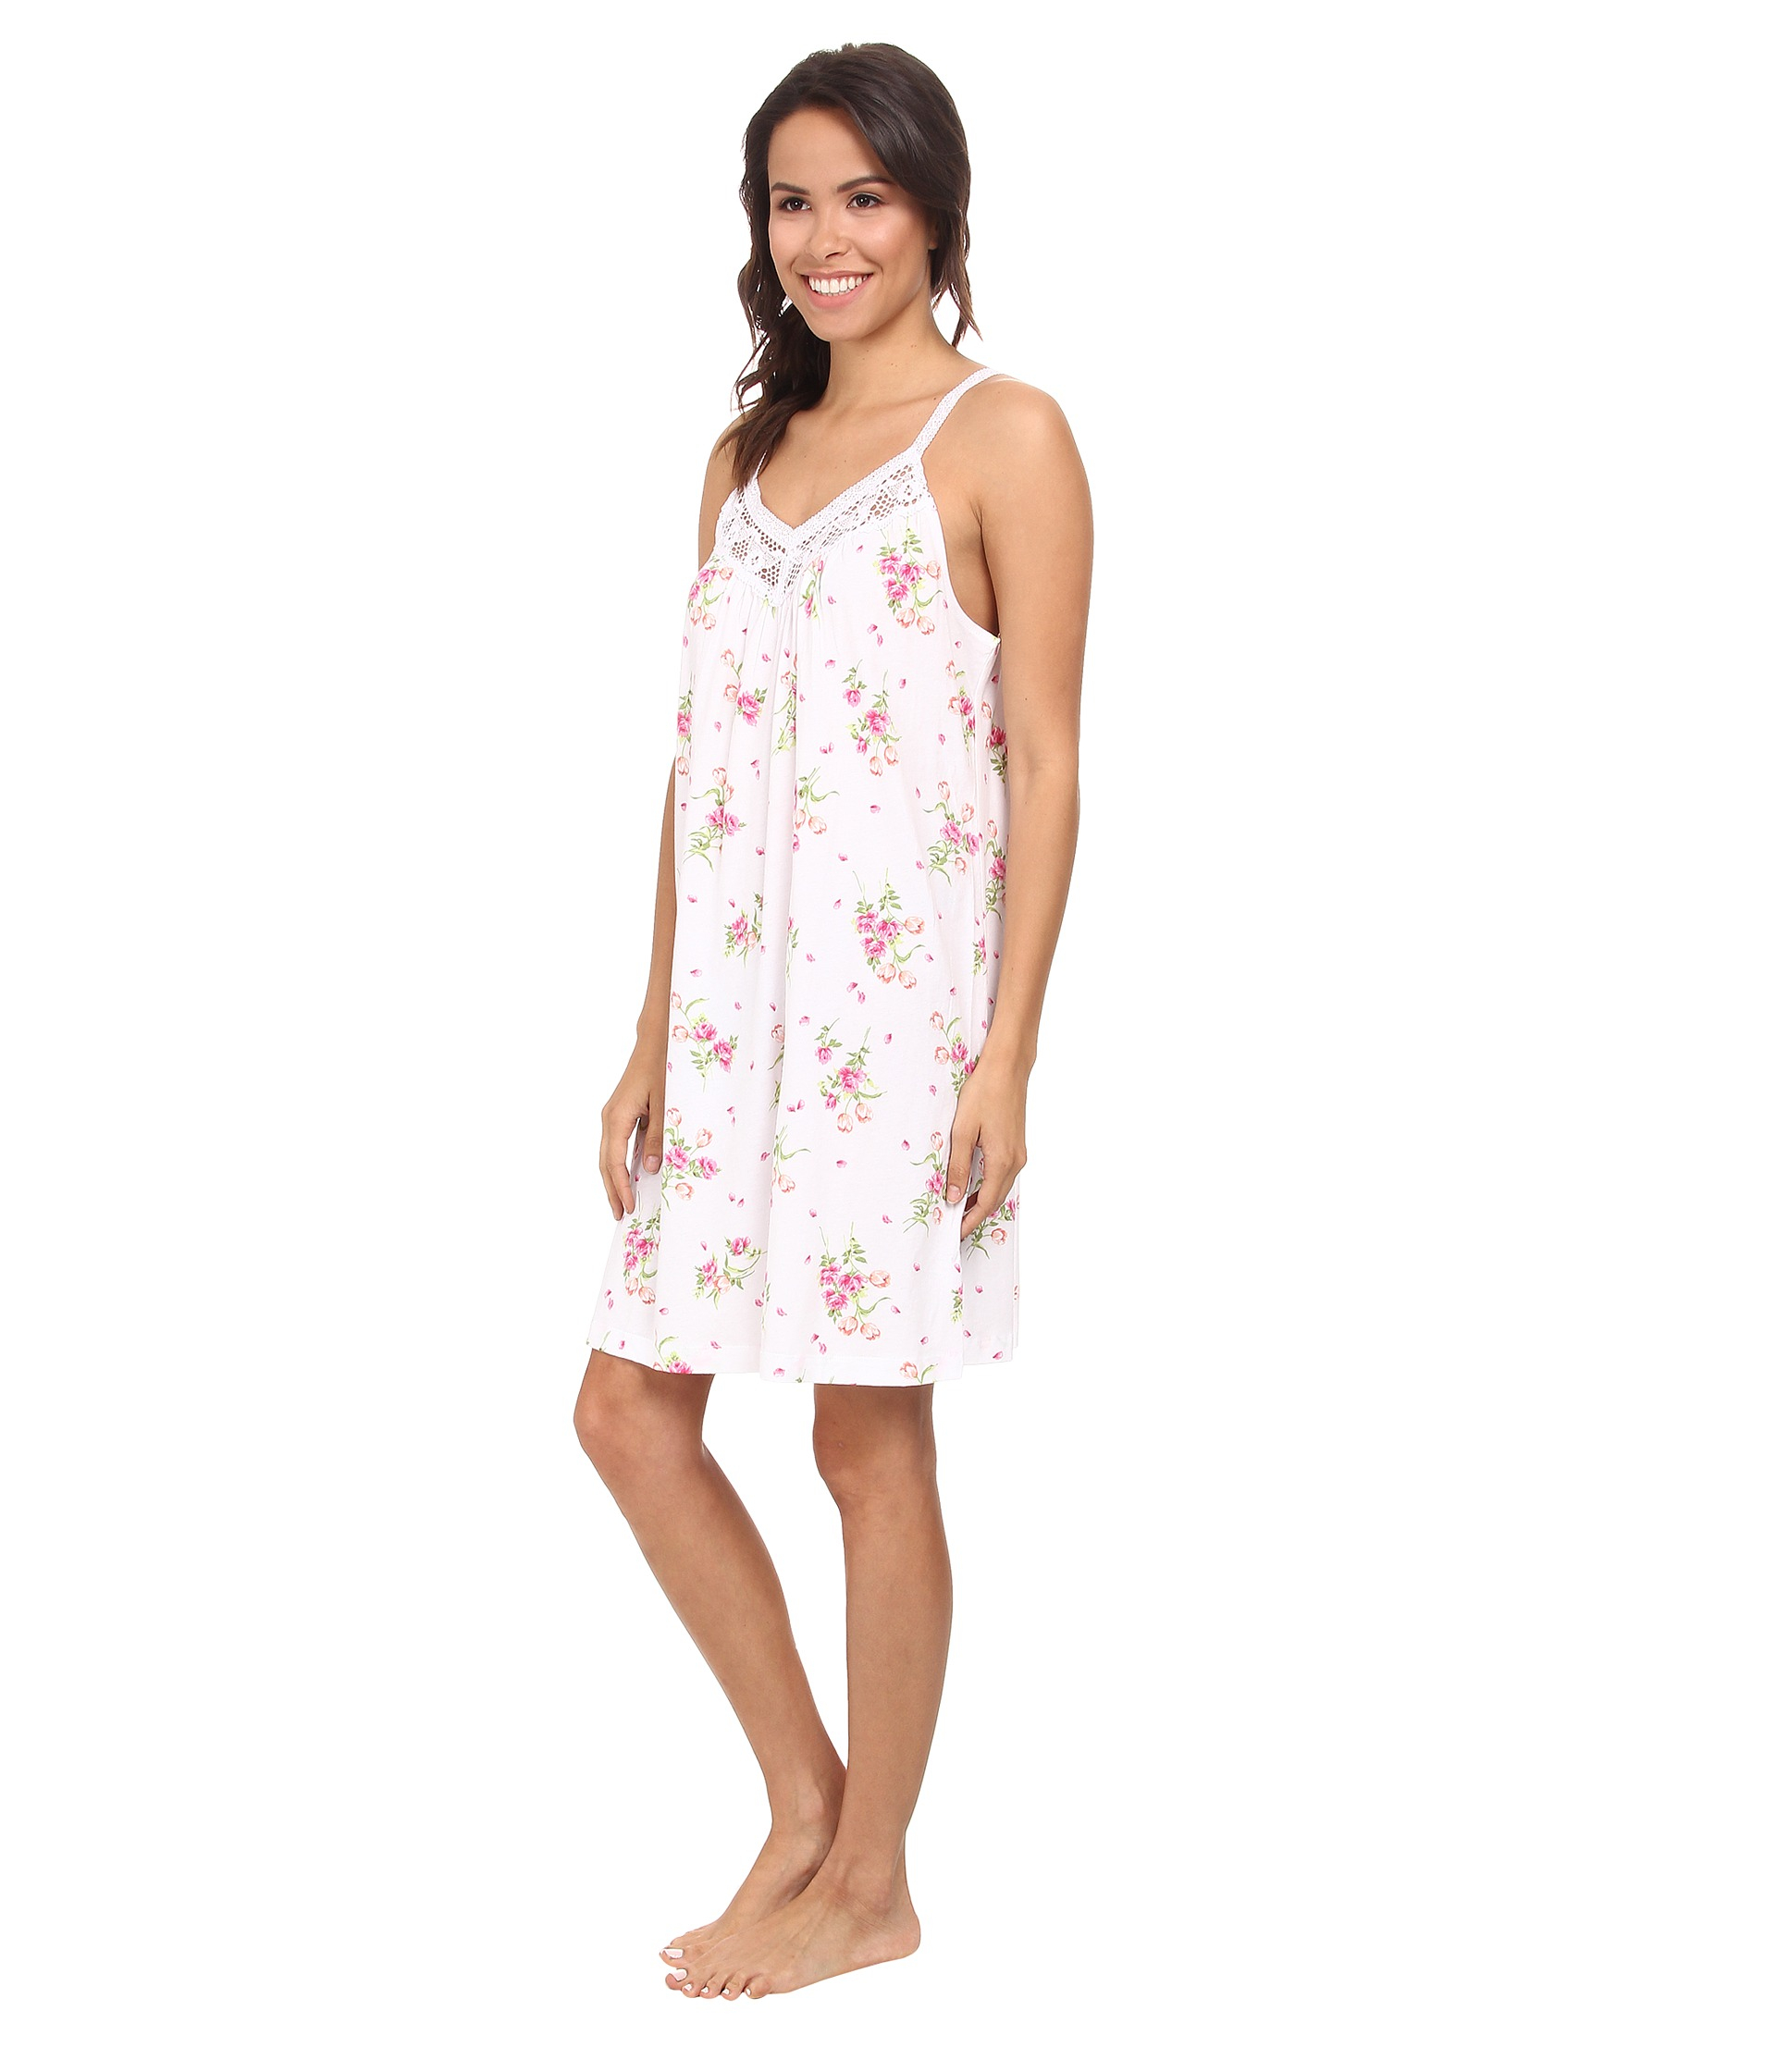 3bf5318220 Lyst - Carole Hochman Floral Print Chemise in White